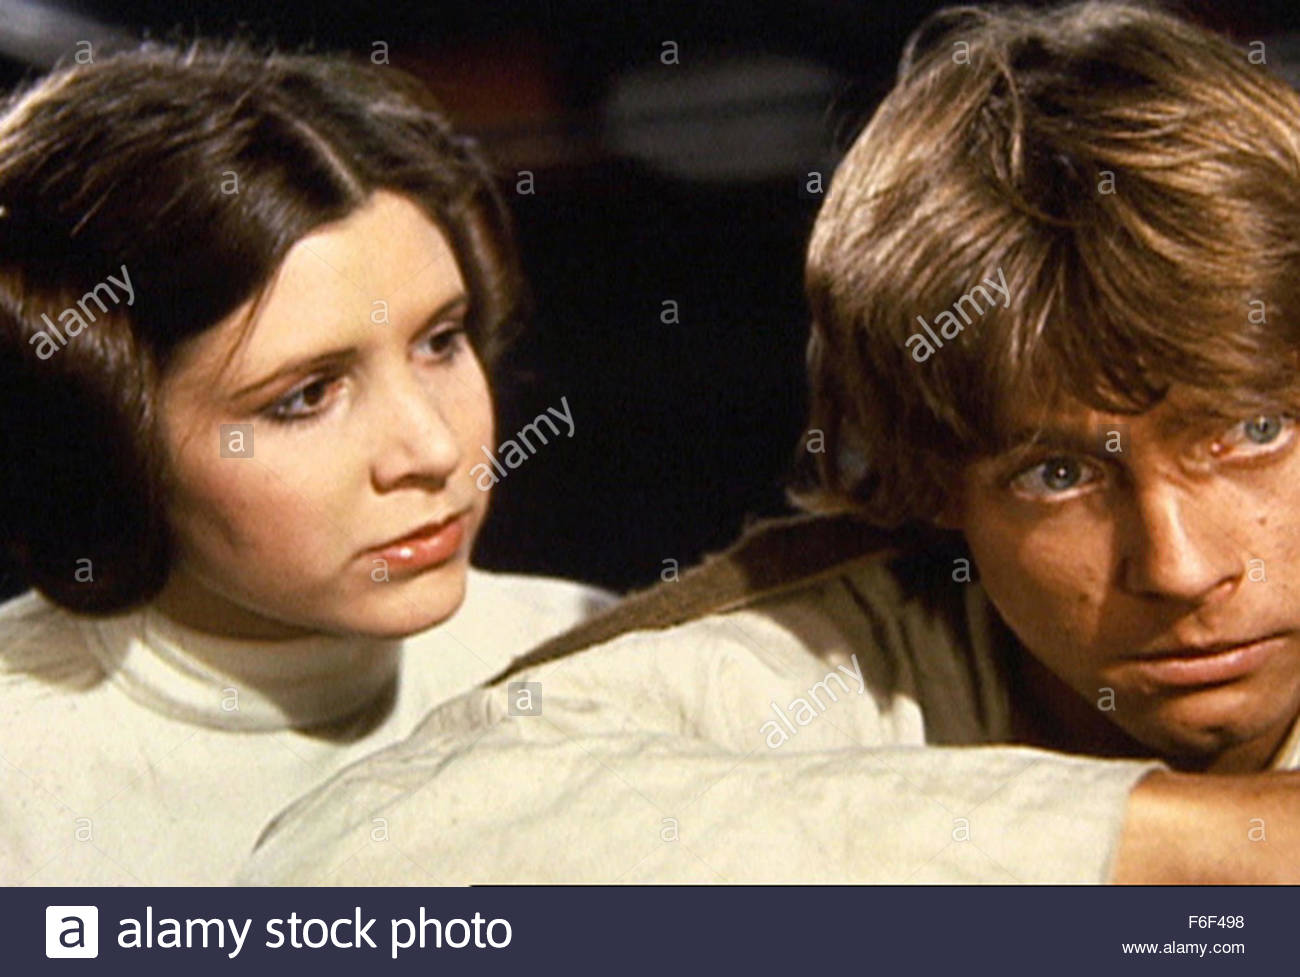 RELEASE DATE: May 21, 1980  MOVIE TITLE: Star Wars: Episode V - The Empire Strikes Back  STUDIO: Lucasfilm  DIRECTOR: - Stock Image